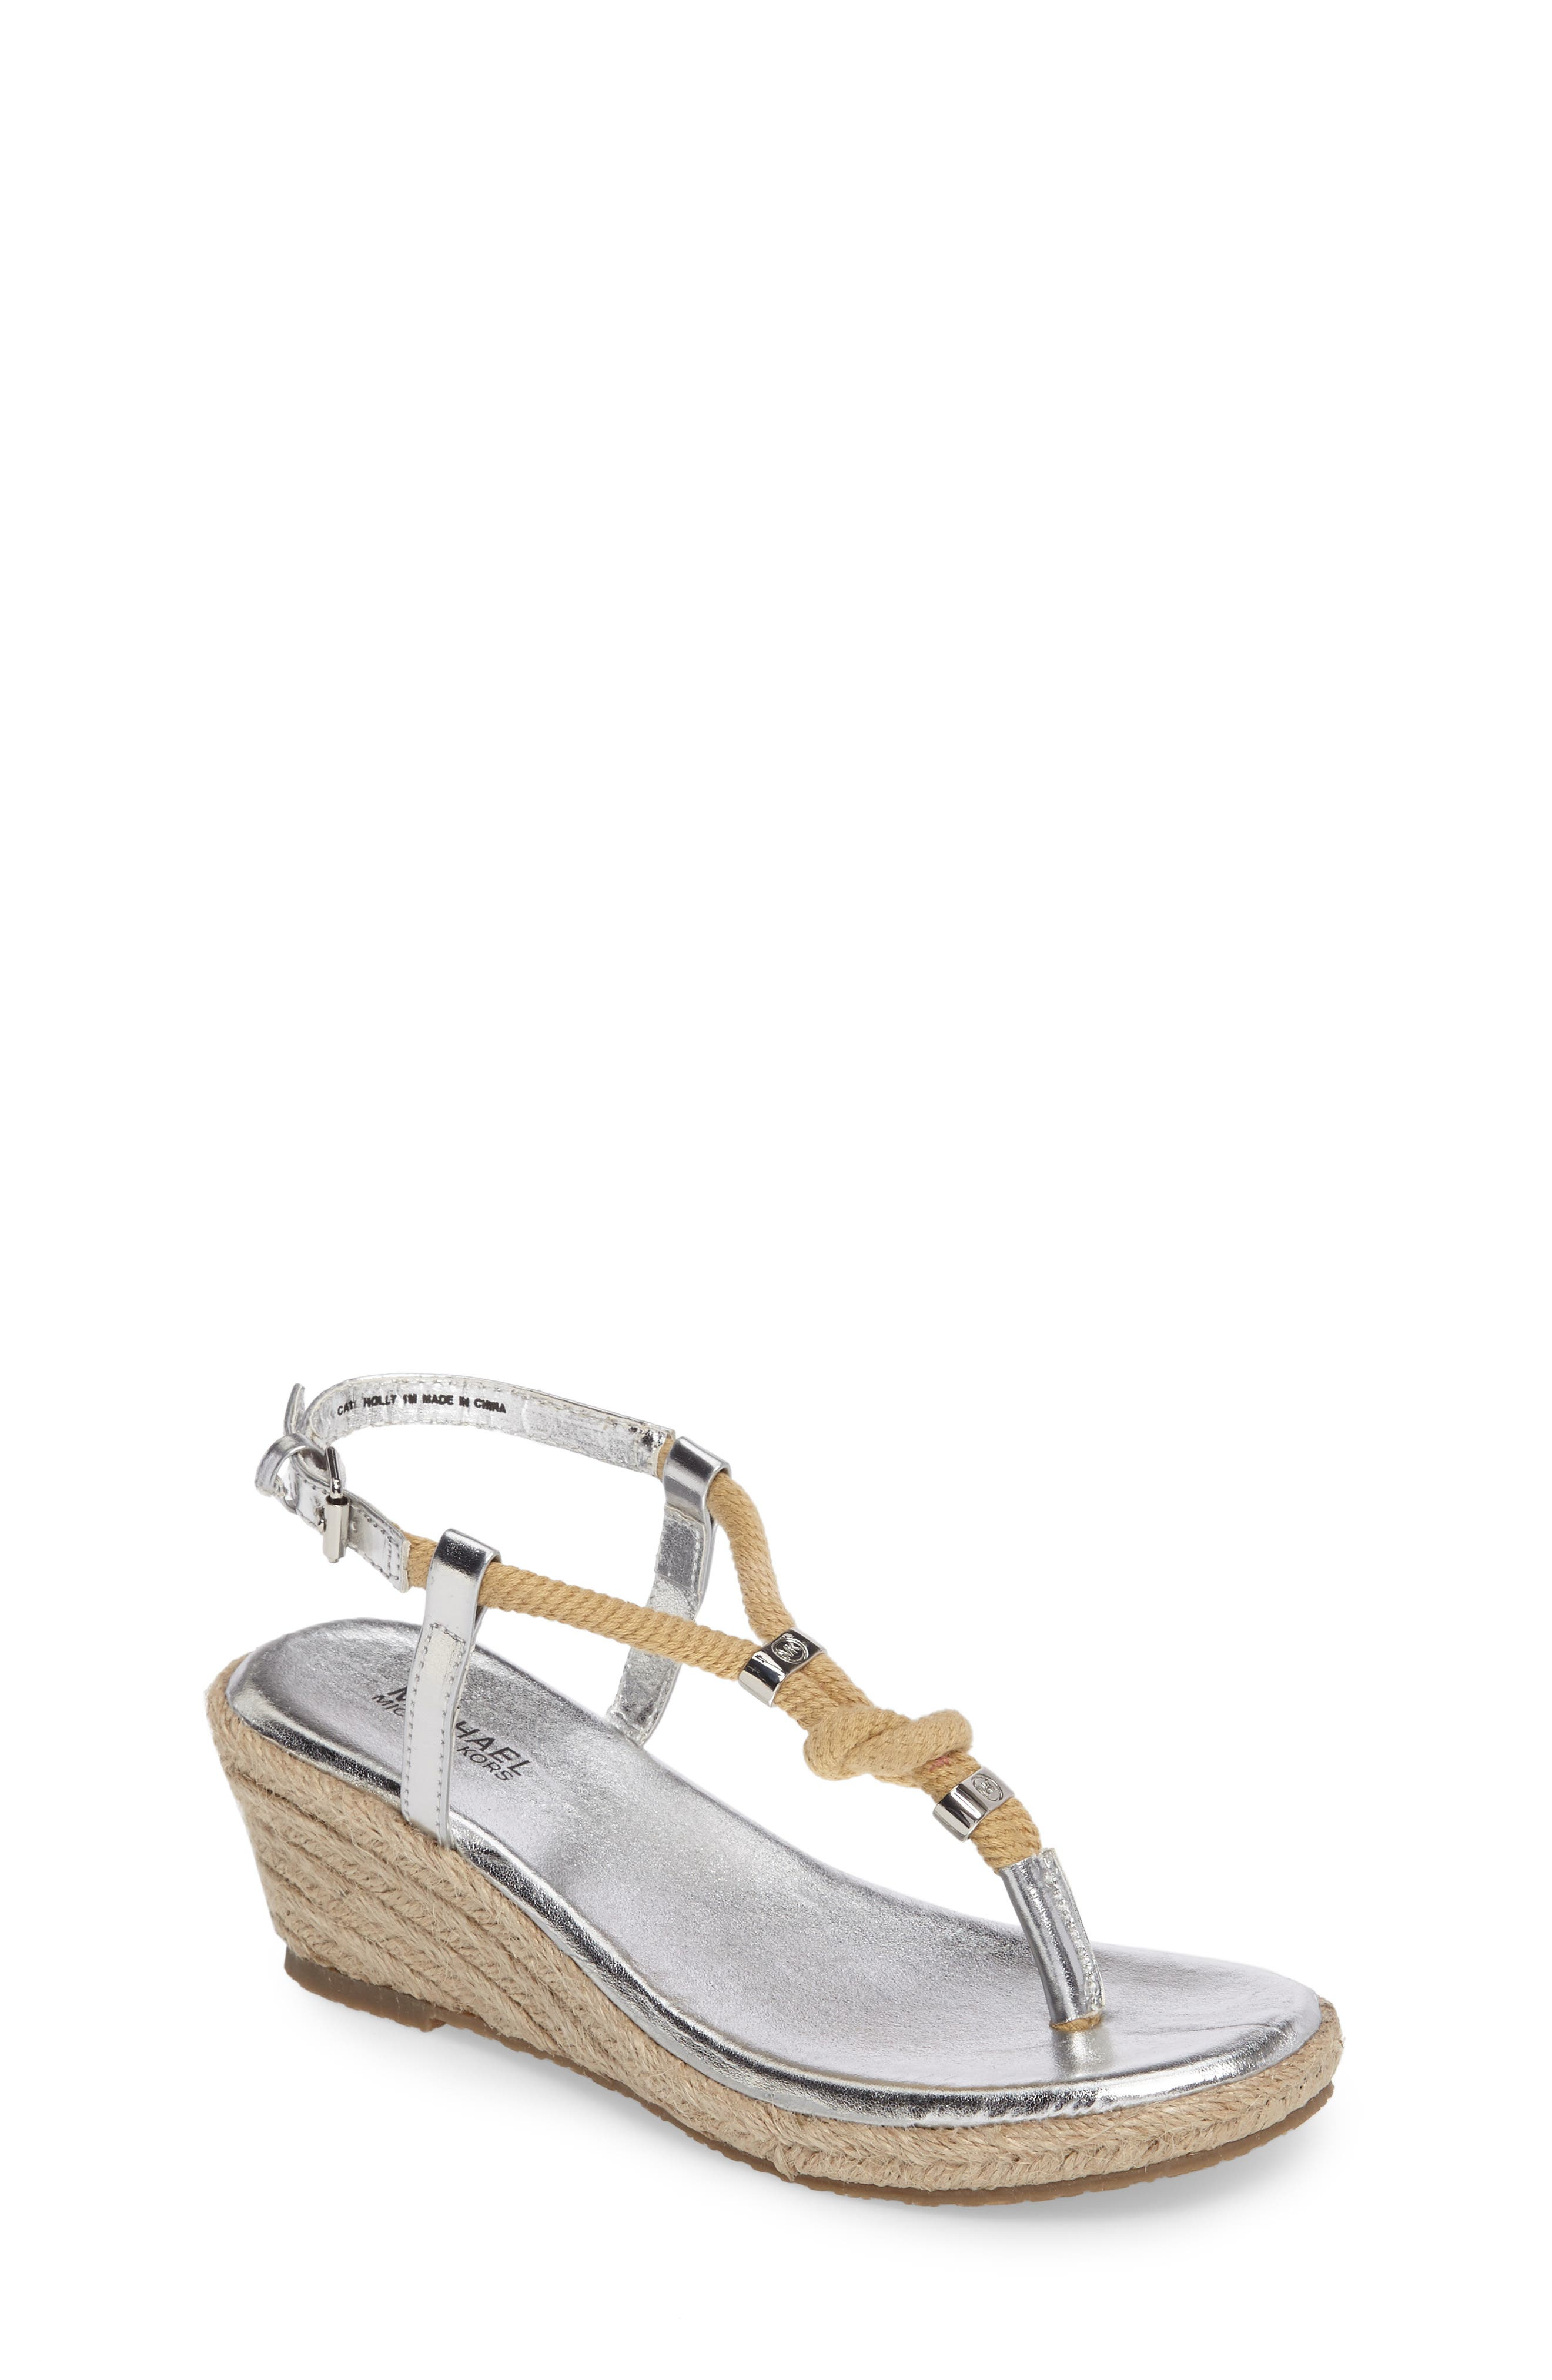 MICHAEL MICHAEL KORS Cate Holly Wedge